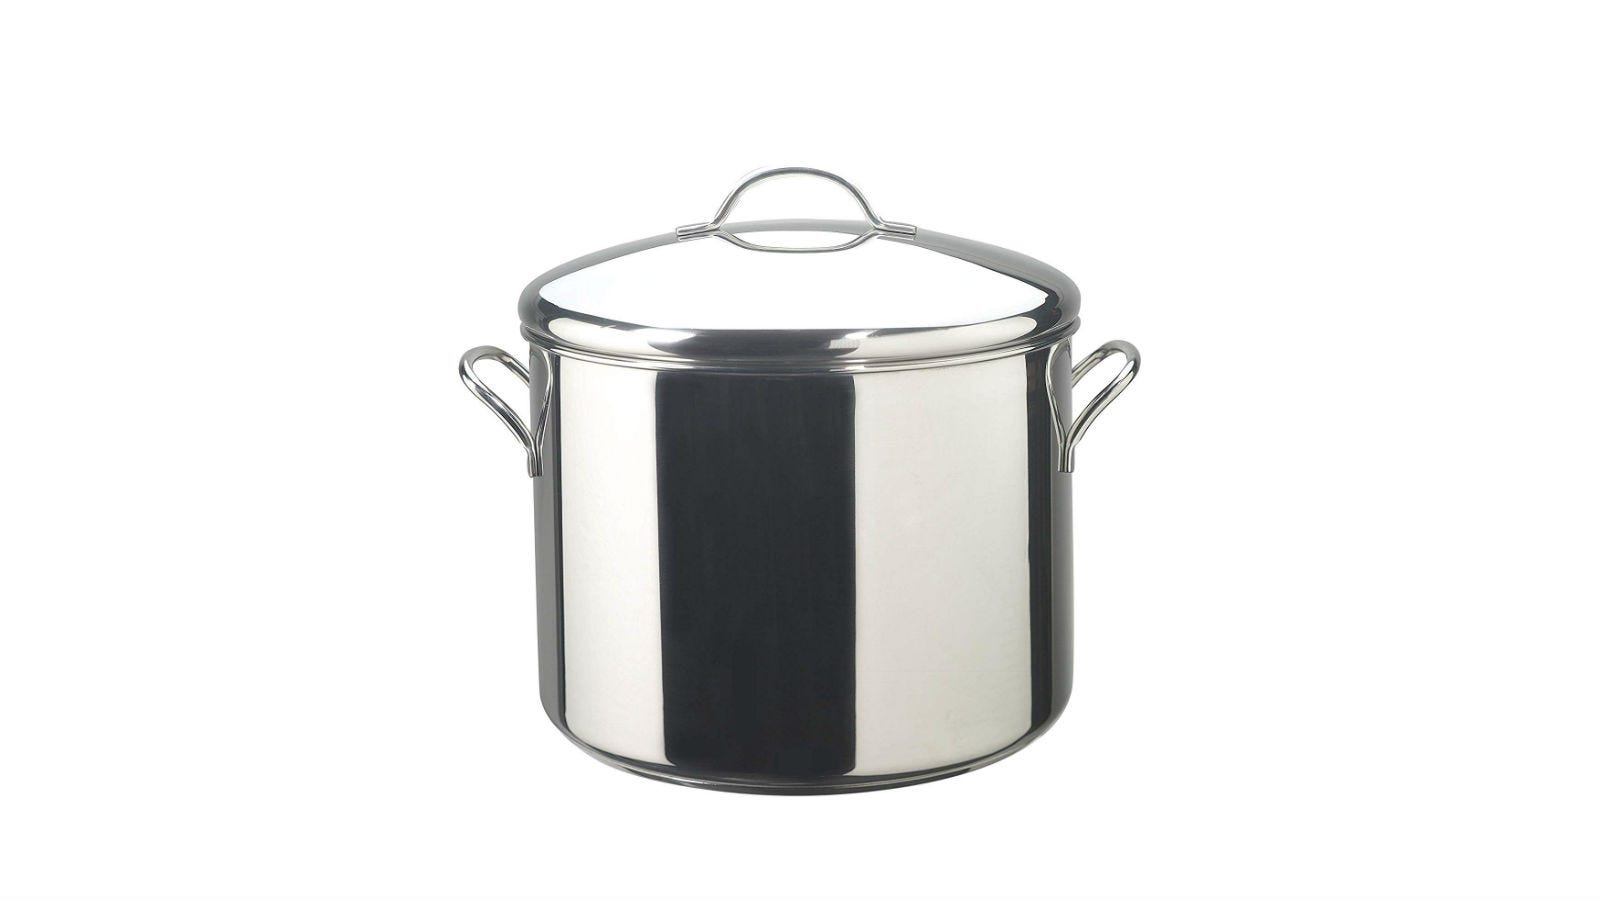 The Farberware Classic Stainless Steel 16-Quart Stockpot with the lid on.